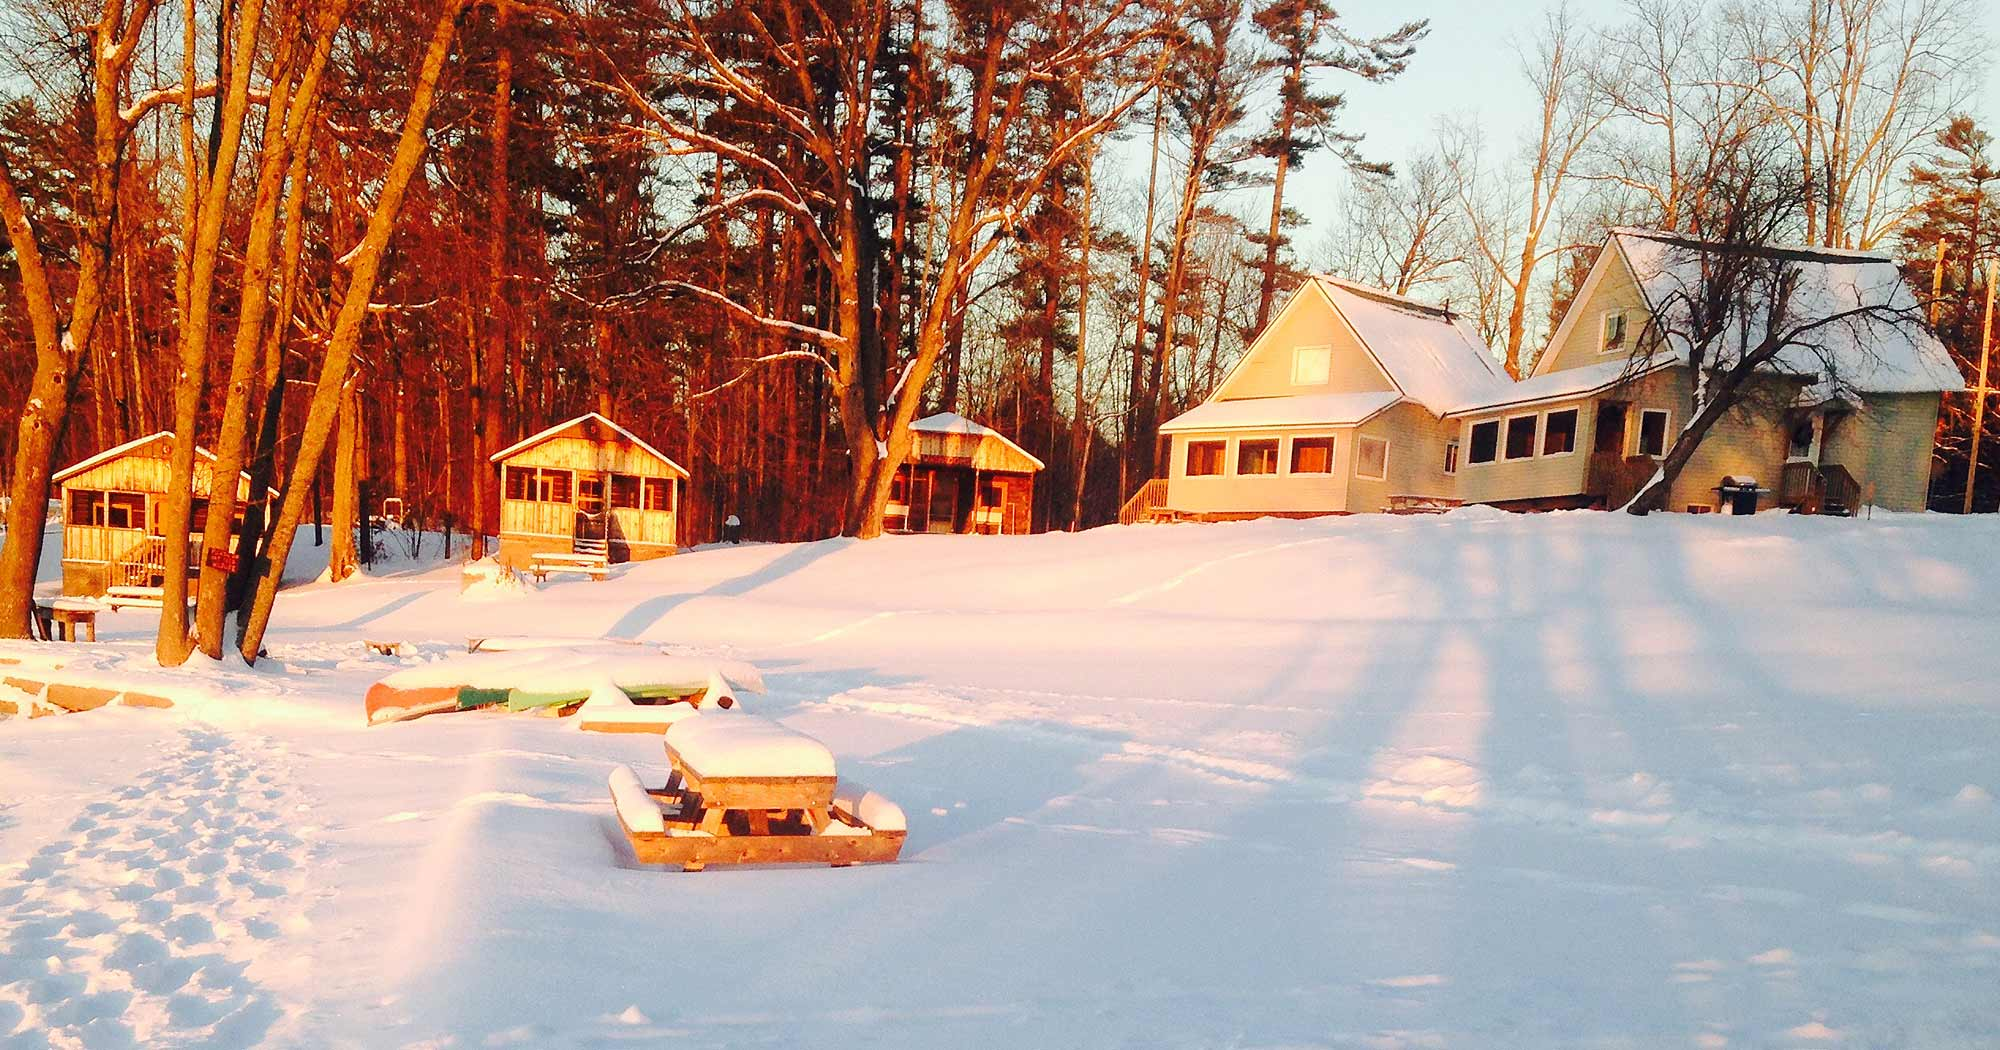 View of three log cabins and 2 chalets at Jocko's Beach Resort in winter